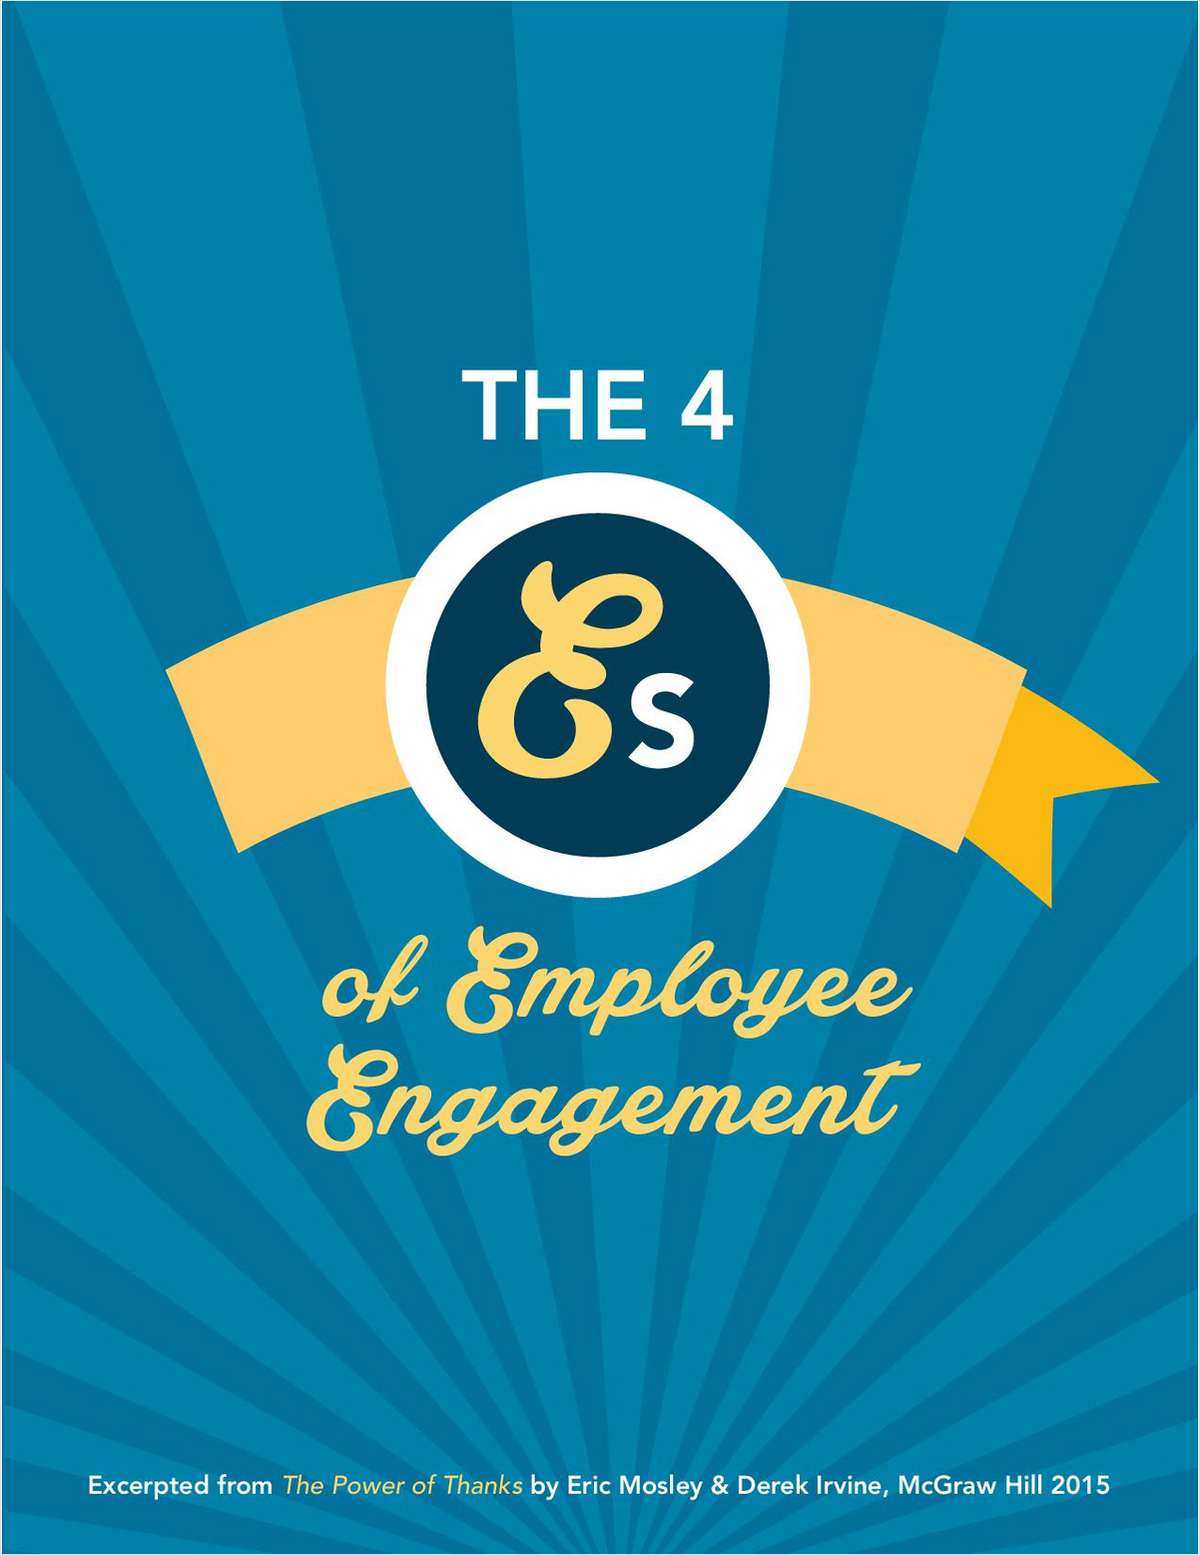 Executive Brief: The 4 Es of Employee Engagement